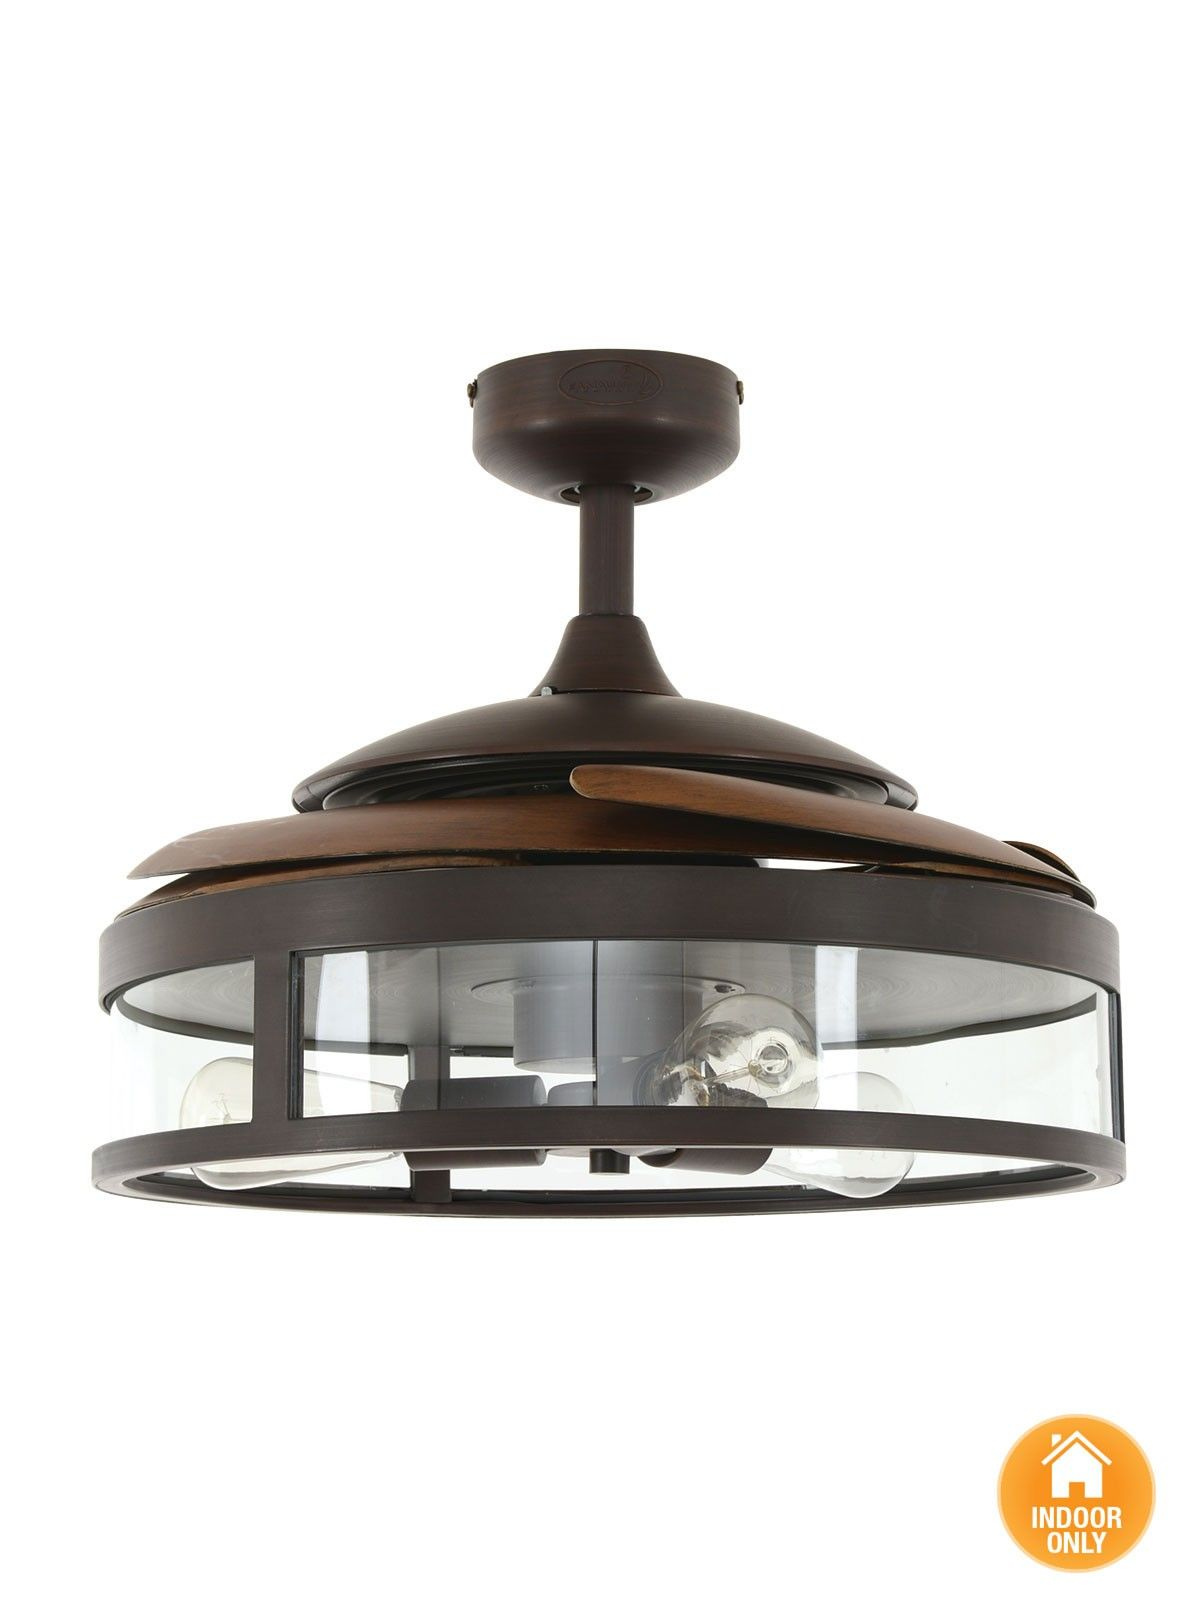 Retractable Blade Ceiling Fan Remodel Bathroom Ceiling Light